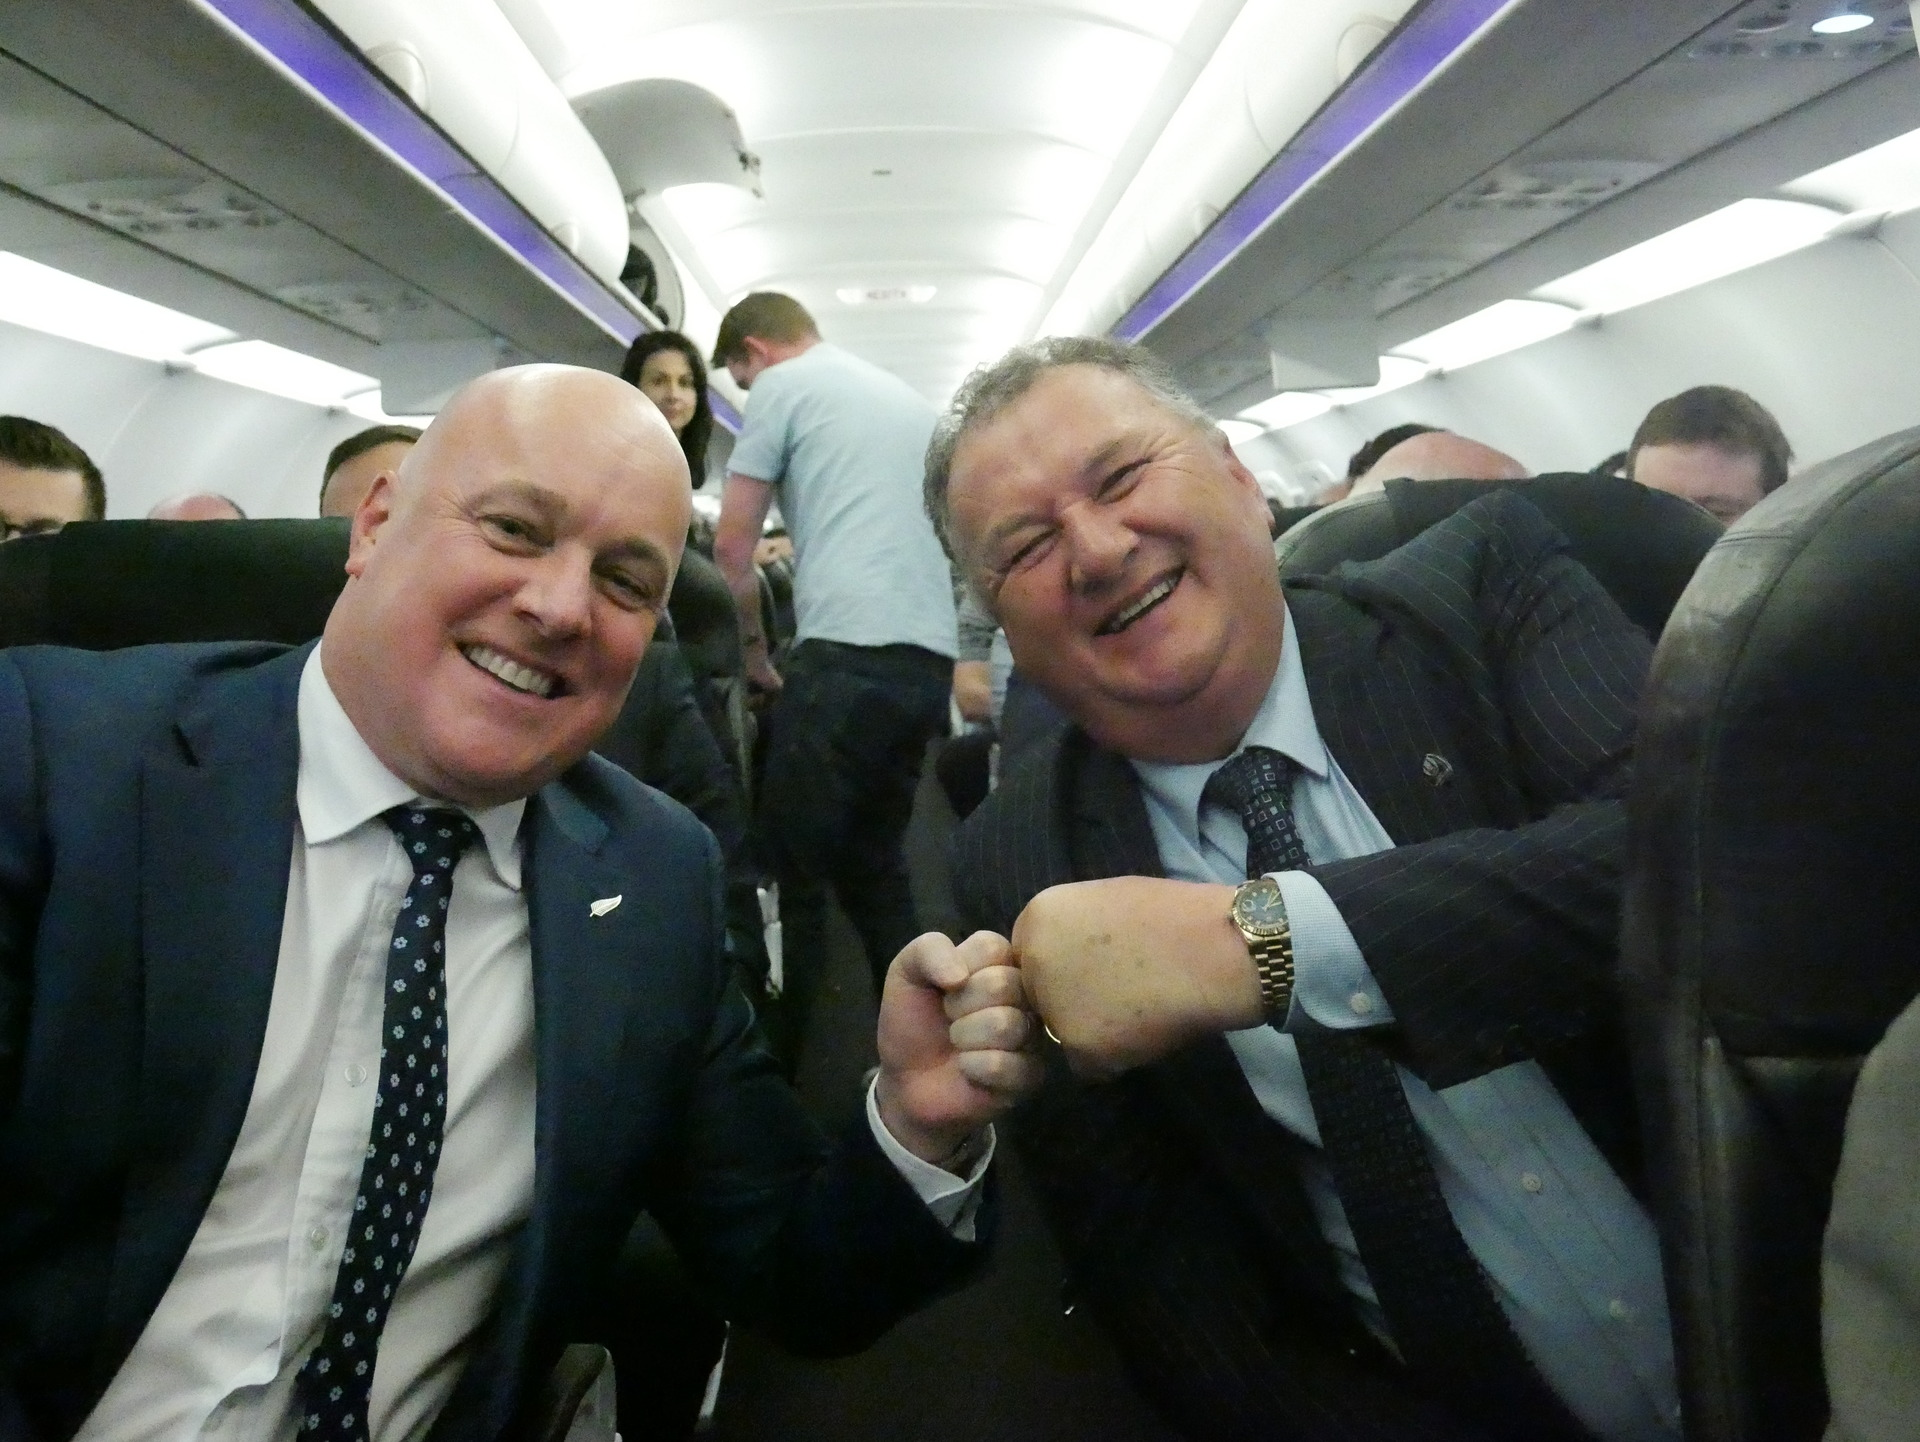 Flight Check: Flying on Air New Zealand's inaugural service from Auckland to Invercargill with Shane Jones and Christopher Luxon